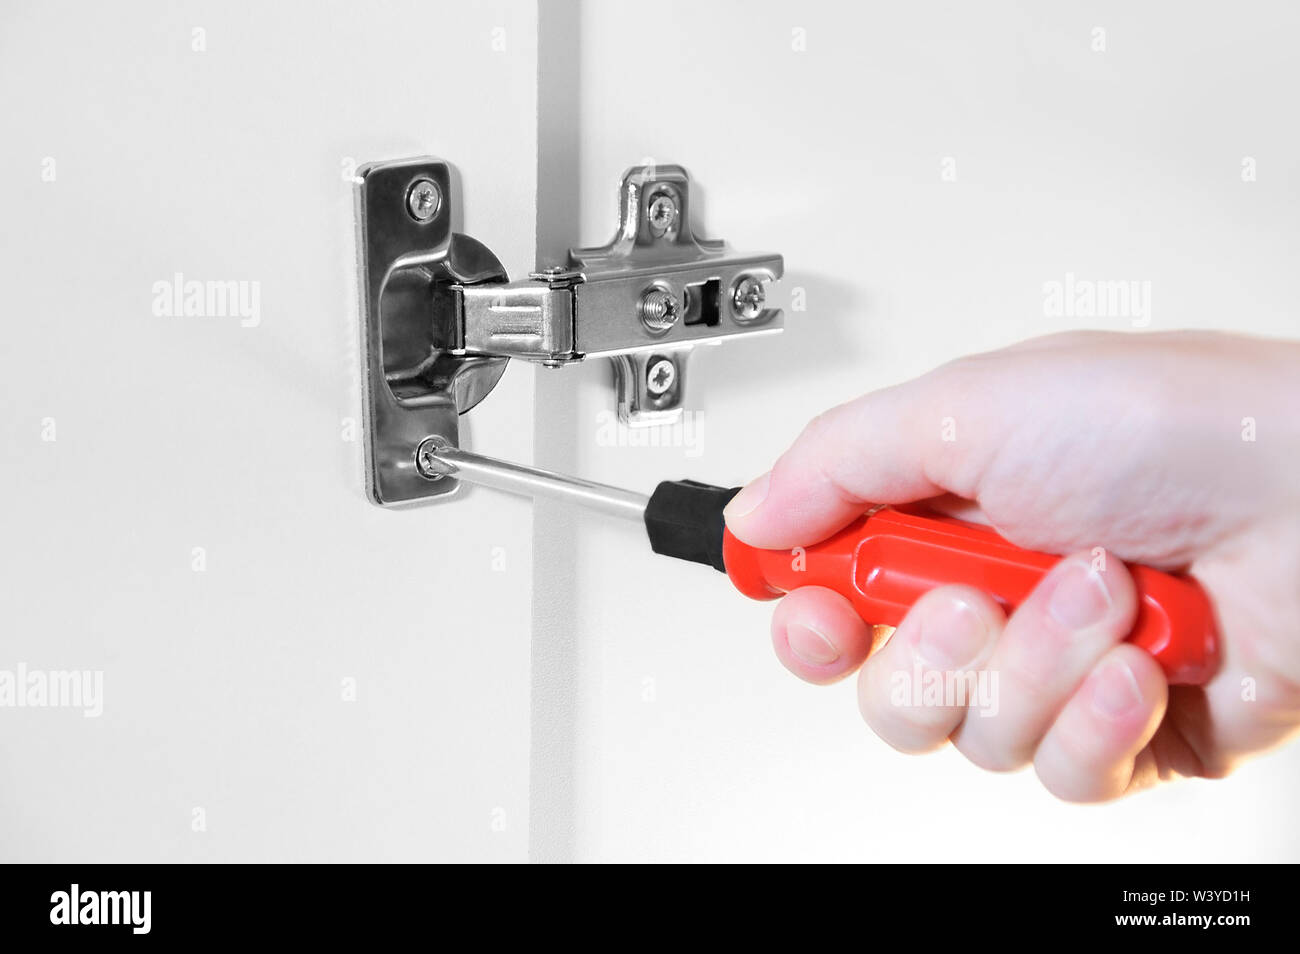 Home repair. The girl fastens with a screwdriver a metal hinge on the cabinet door. - Stock Image